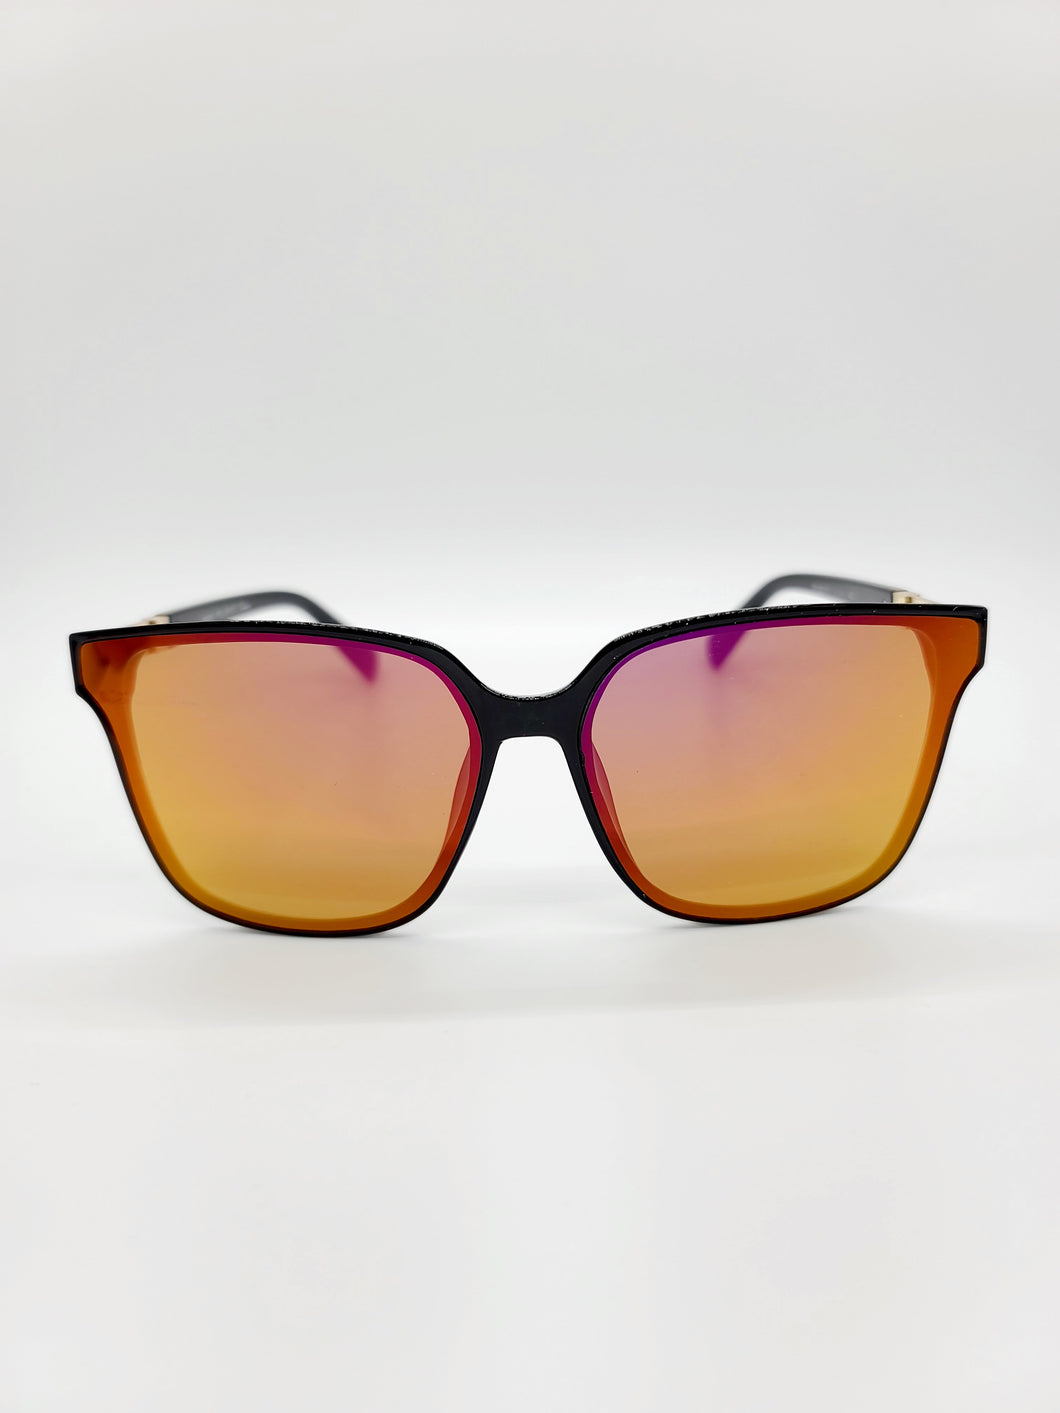 orange and hot pink reflective lens sunglasses with metal arm detail